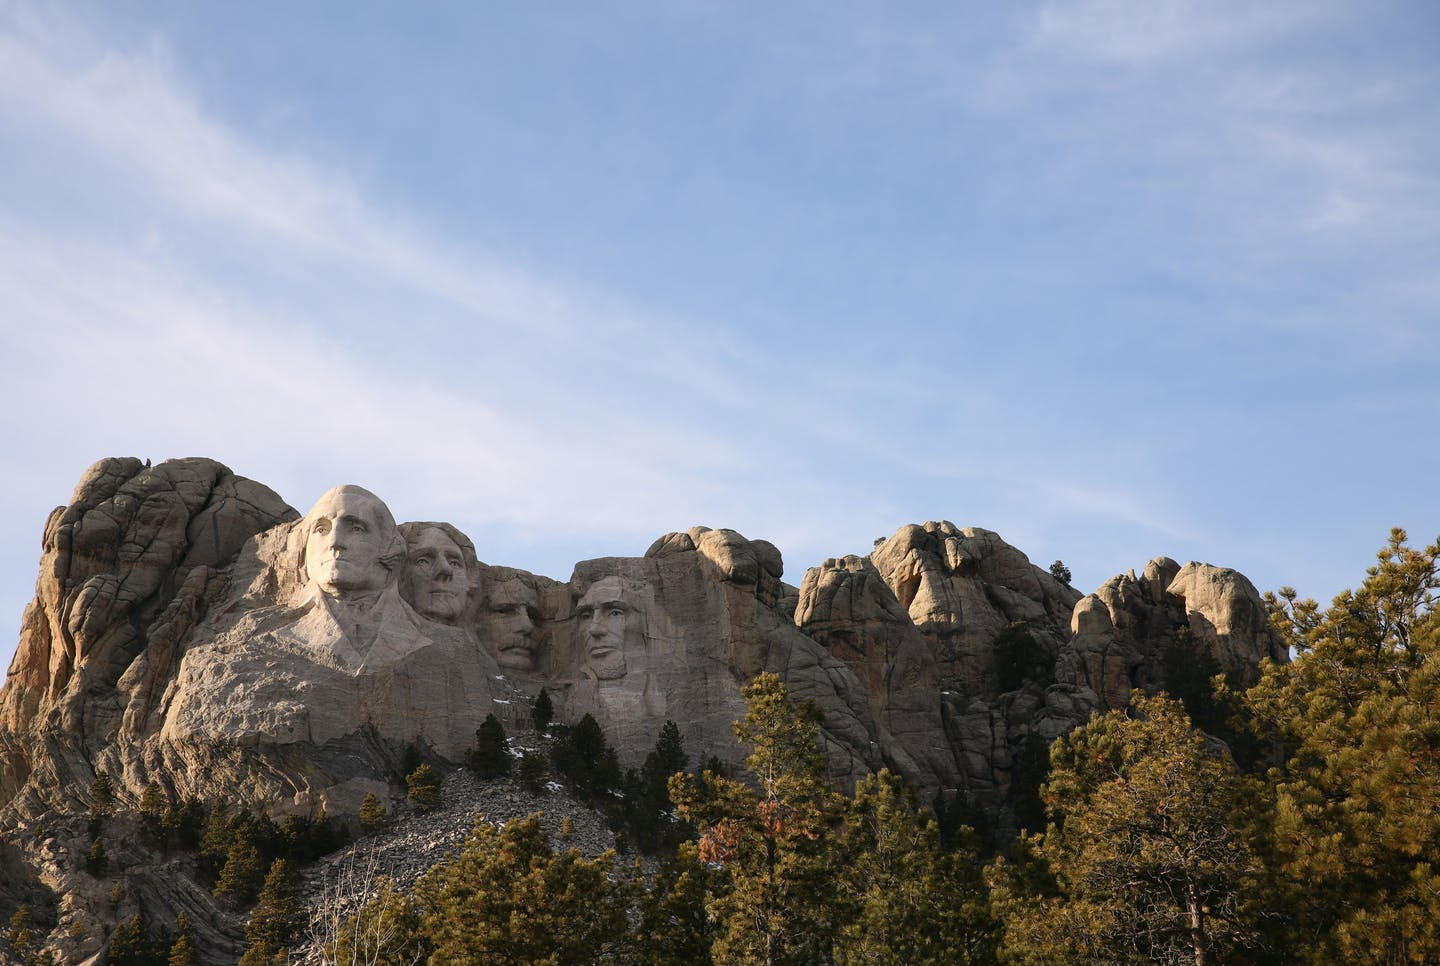 National parks – even Mount Rushmore – show that theres more than one kind of patriotism